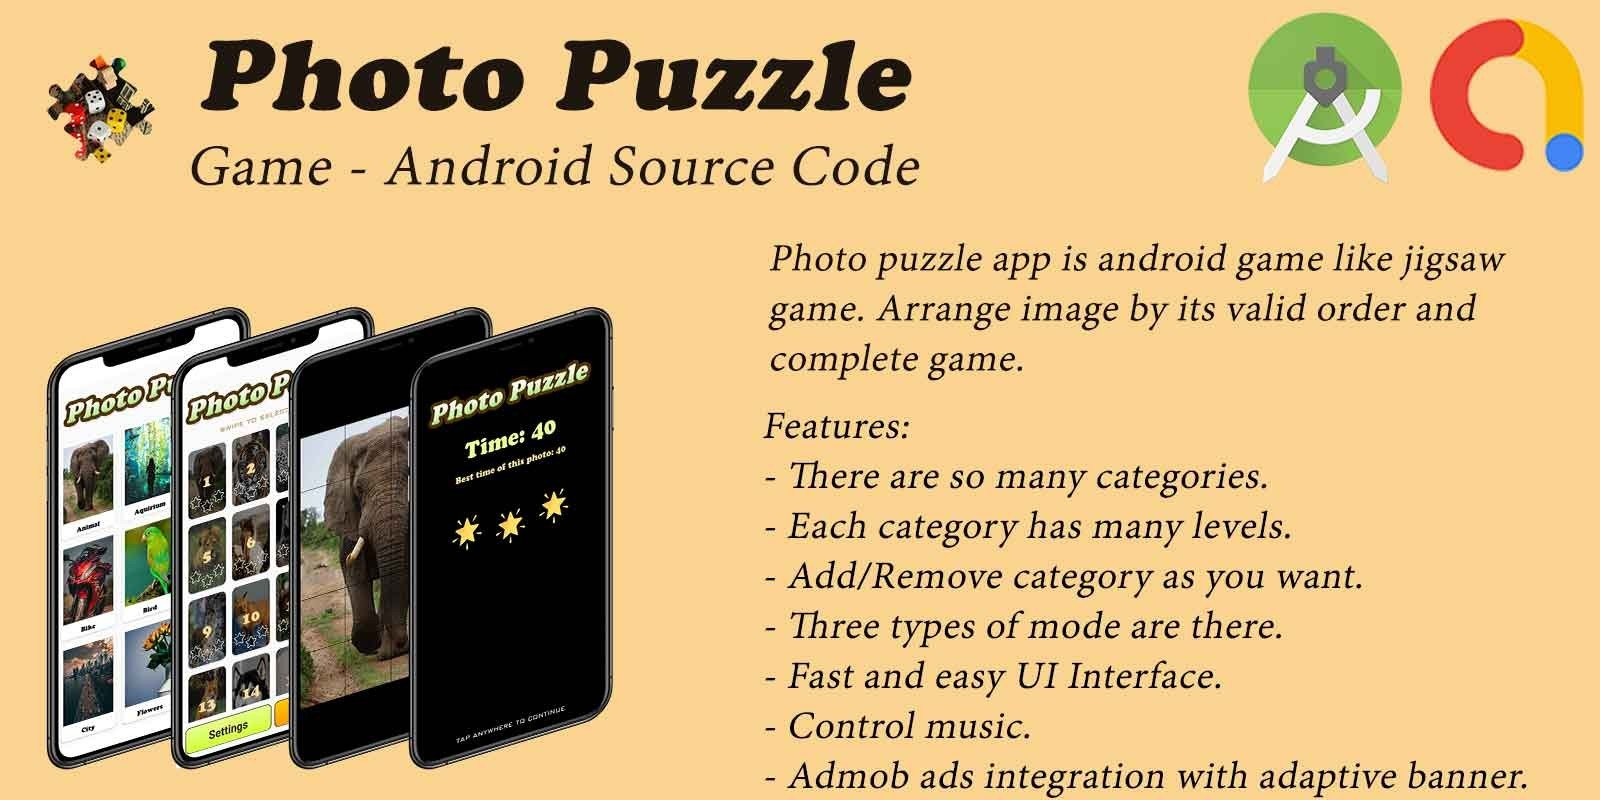 Photo Puzzle - Android Source Code